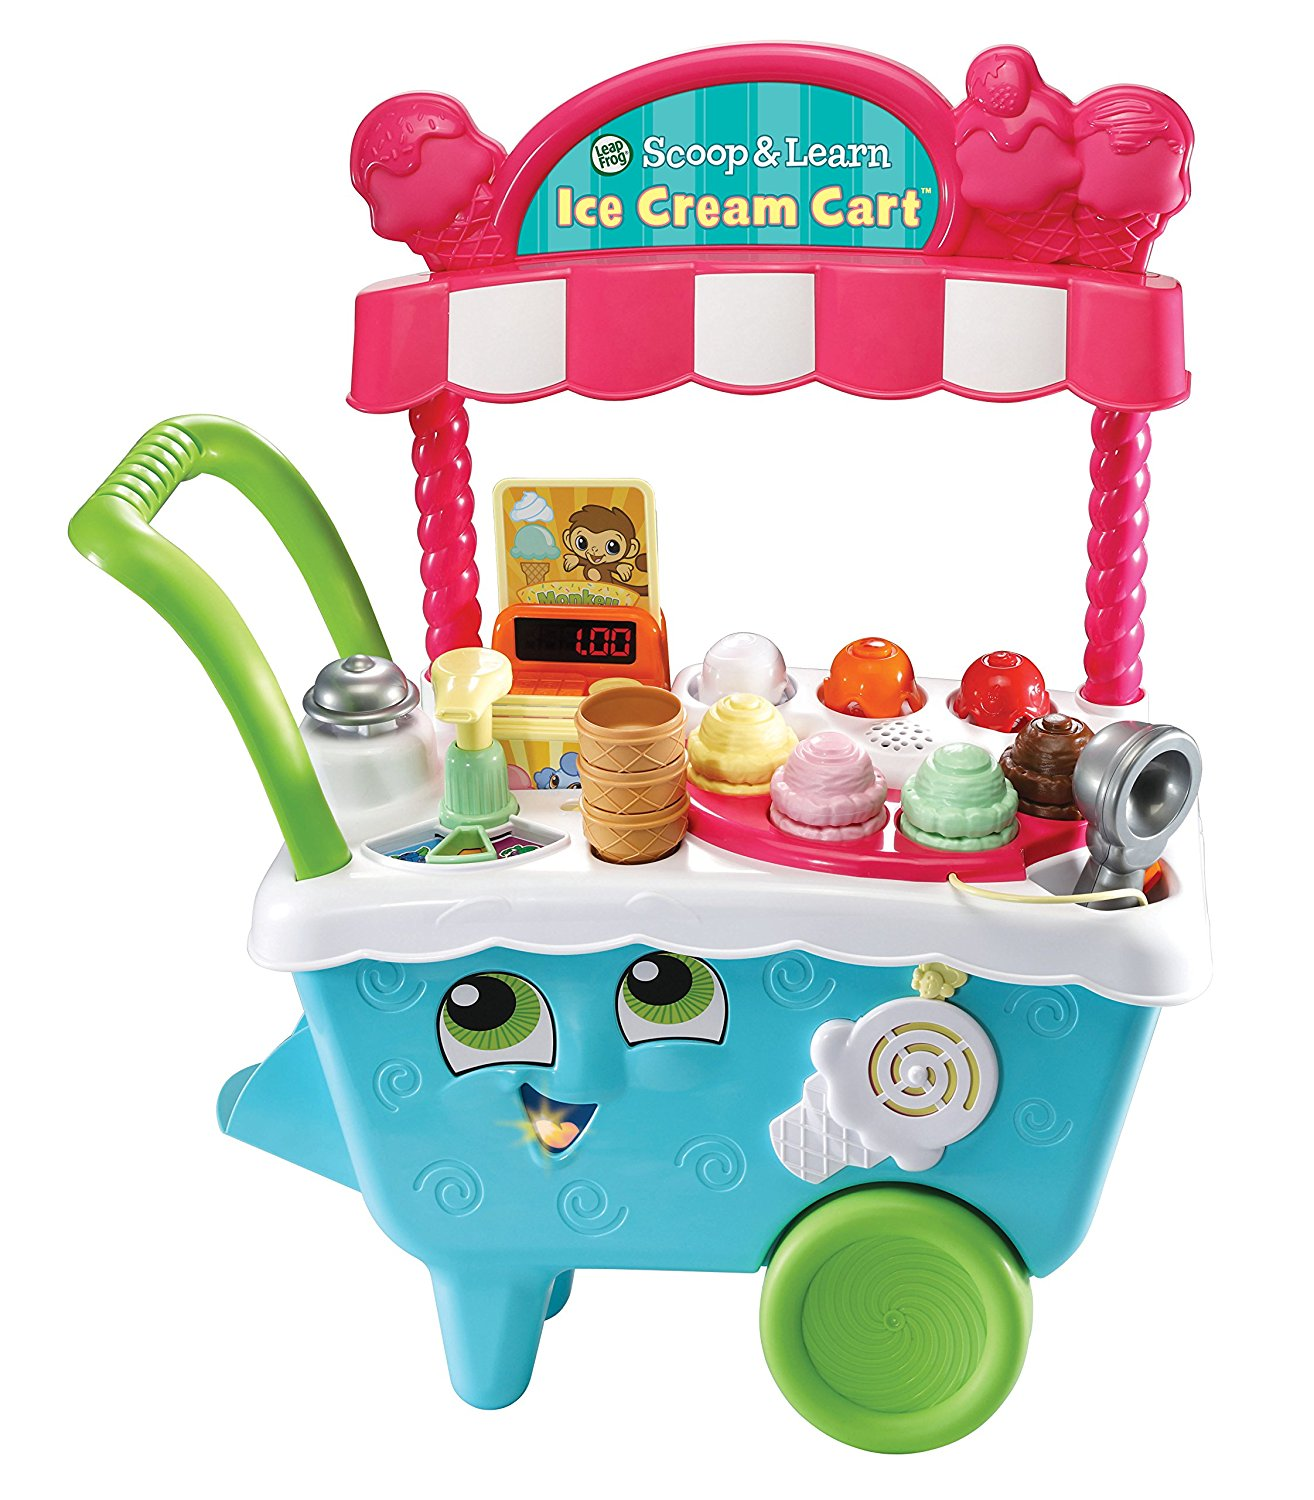 LeapFrog Scoop & Learn Ice Cream Cart- best gifts for kids